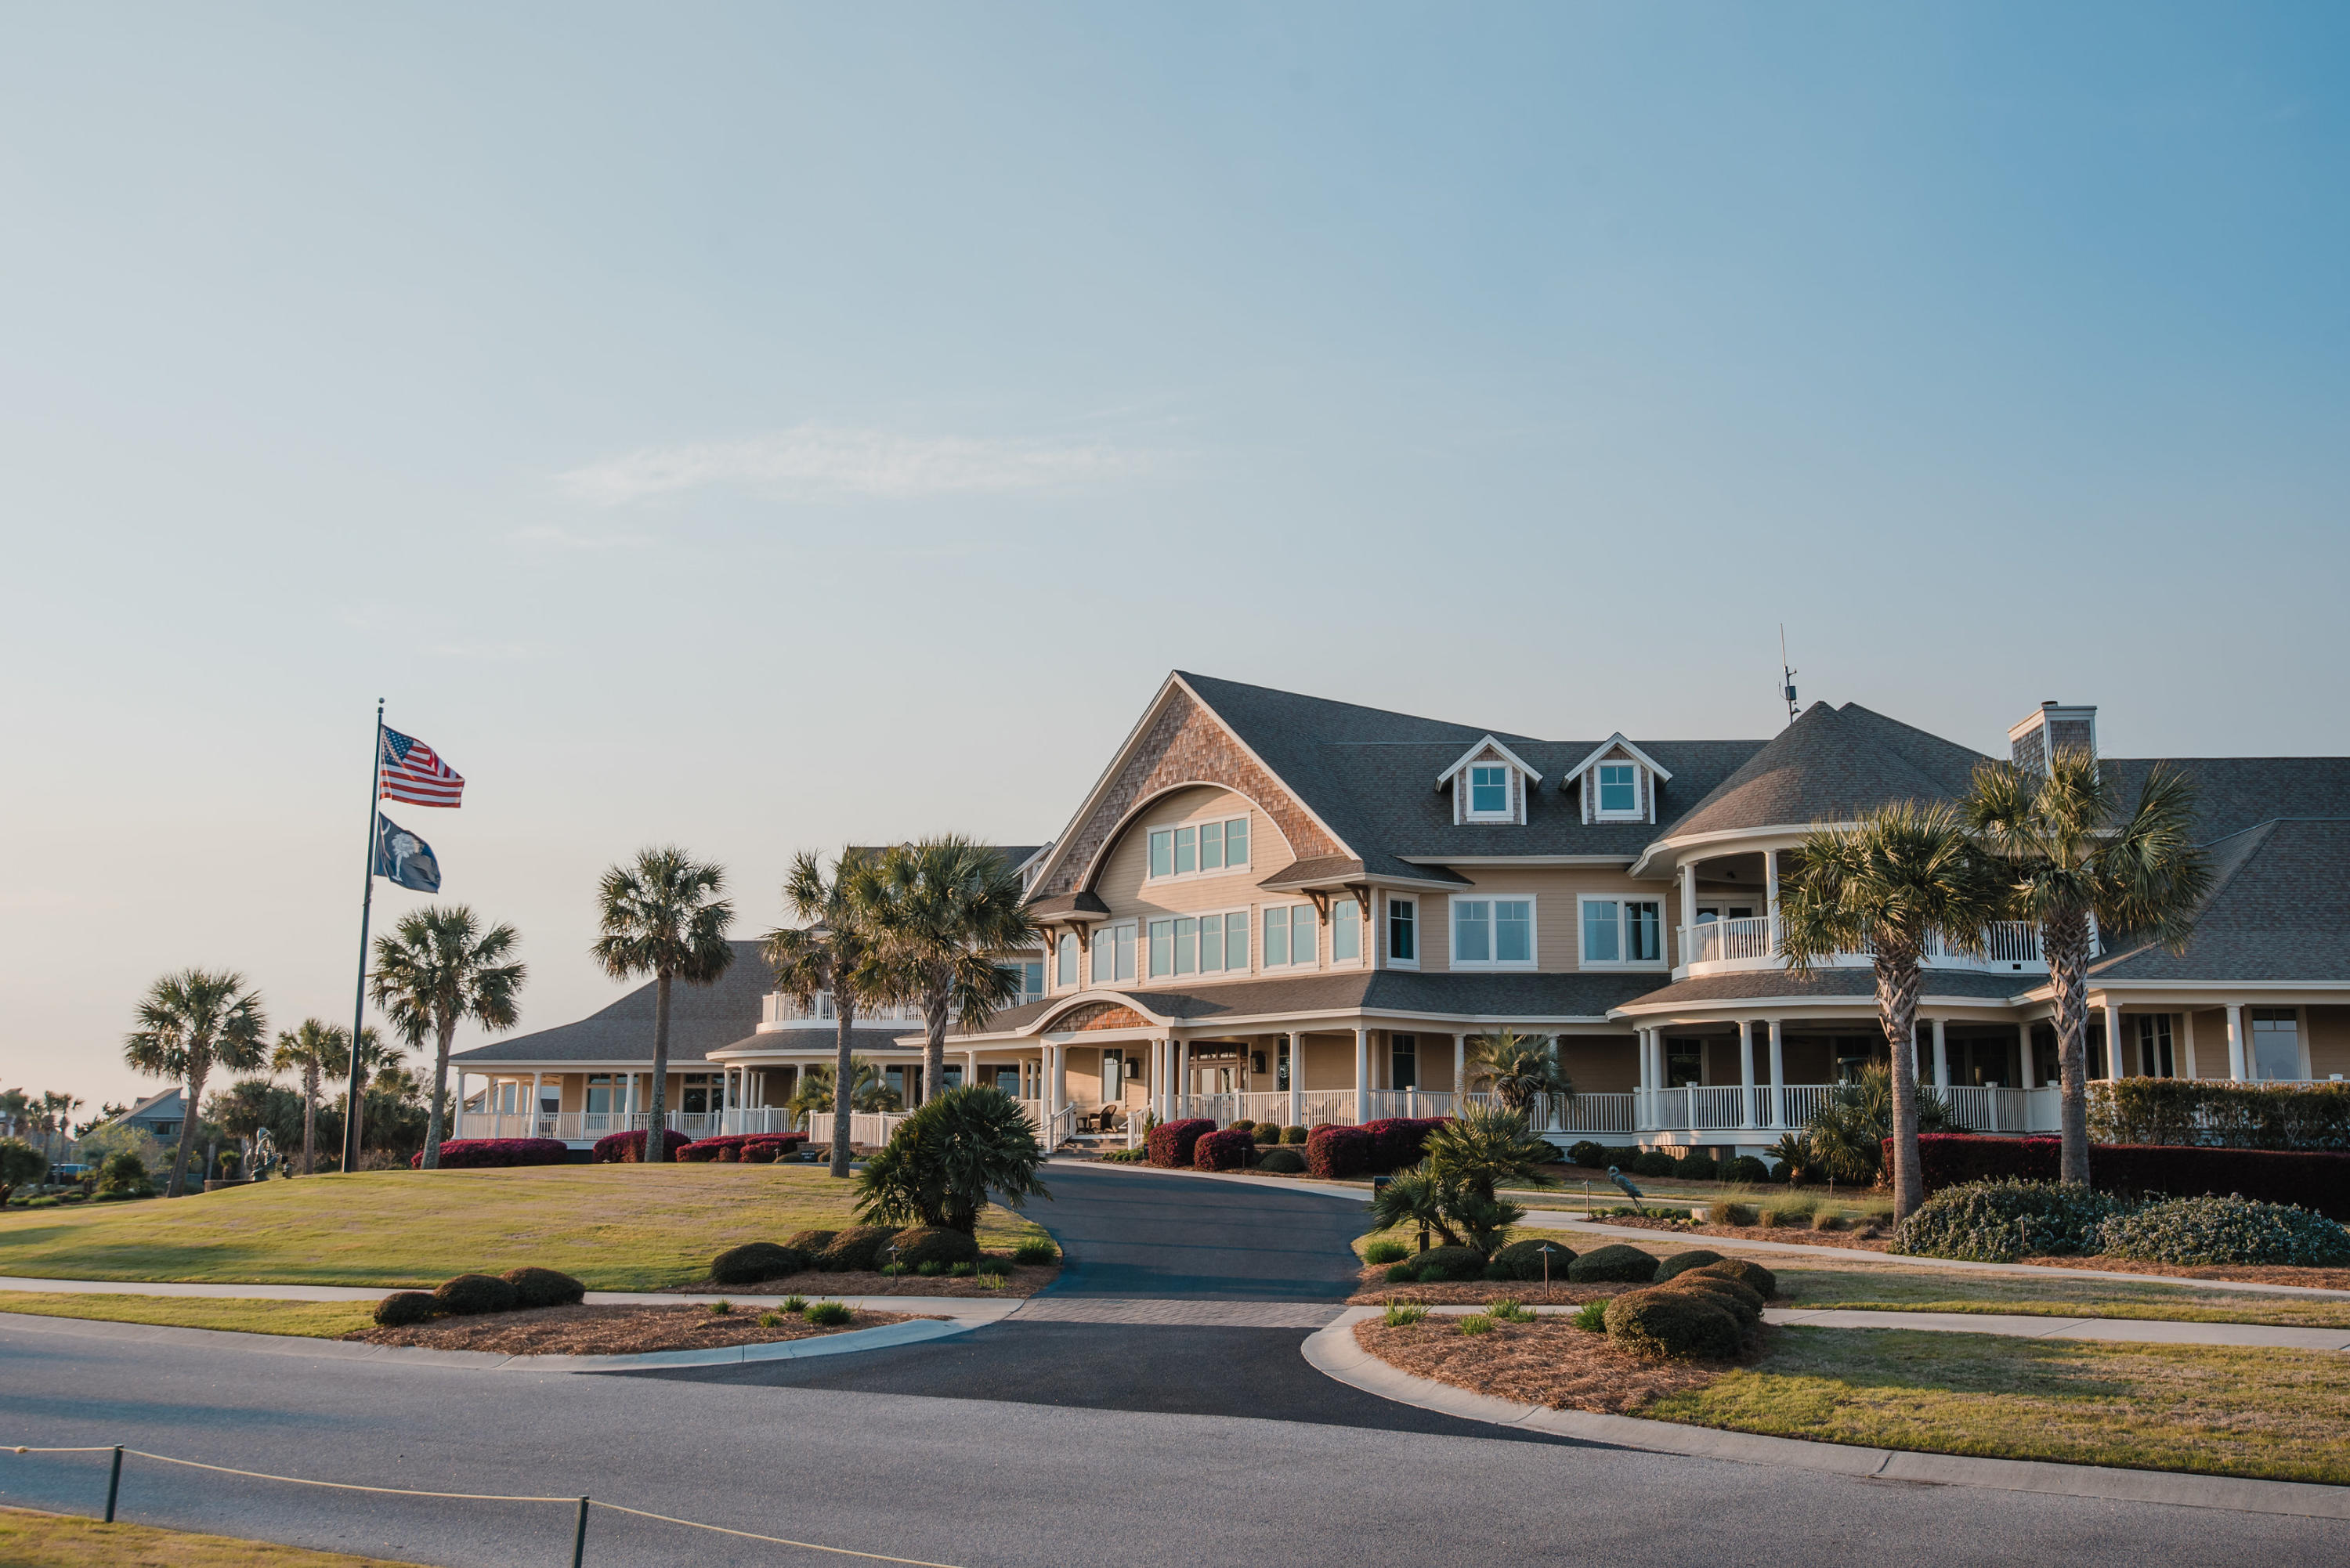 Seabrook Island Homes For Sale - 1329 Pelican Watch Villas, Seabrook Island, SC - 1